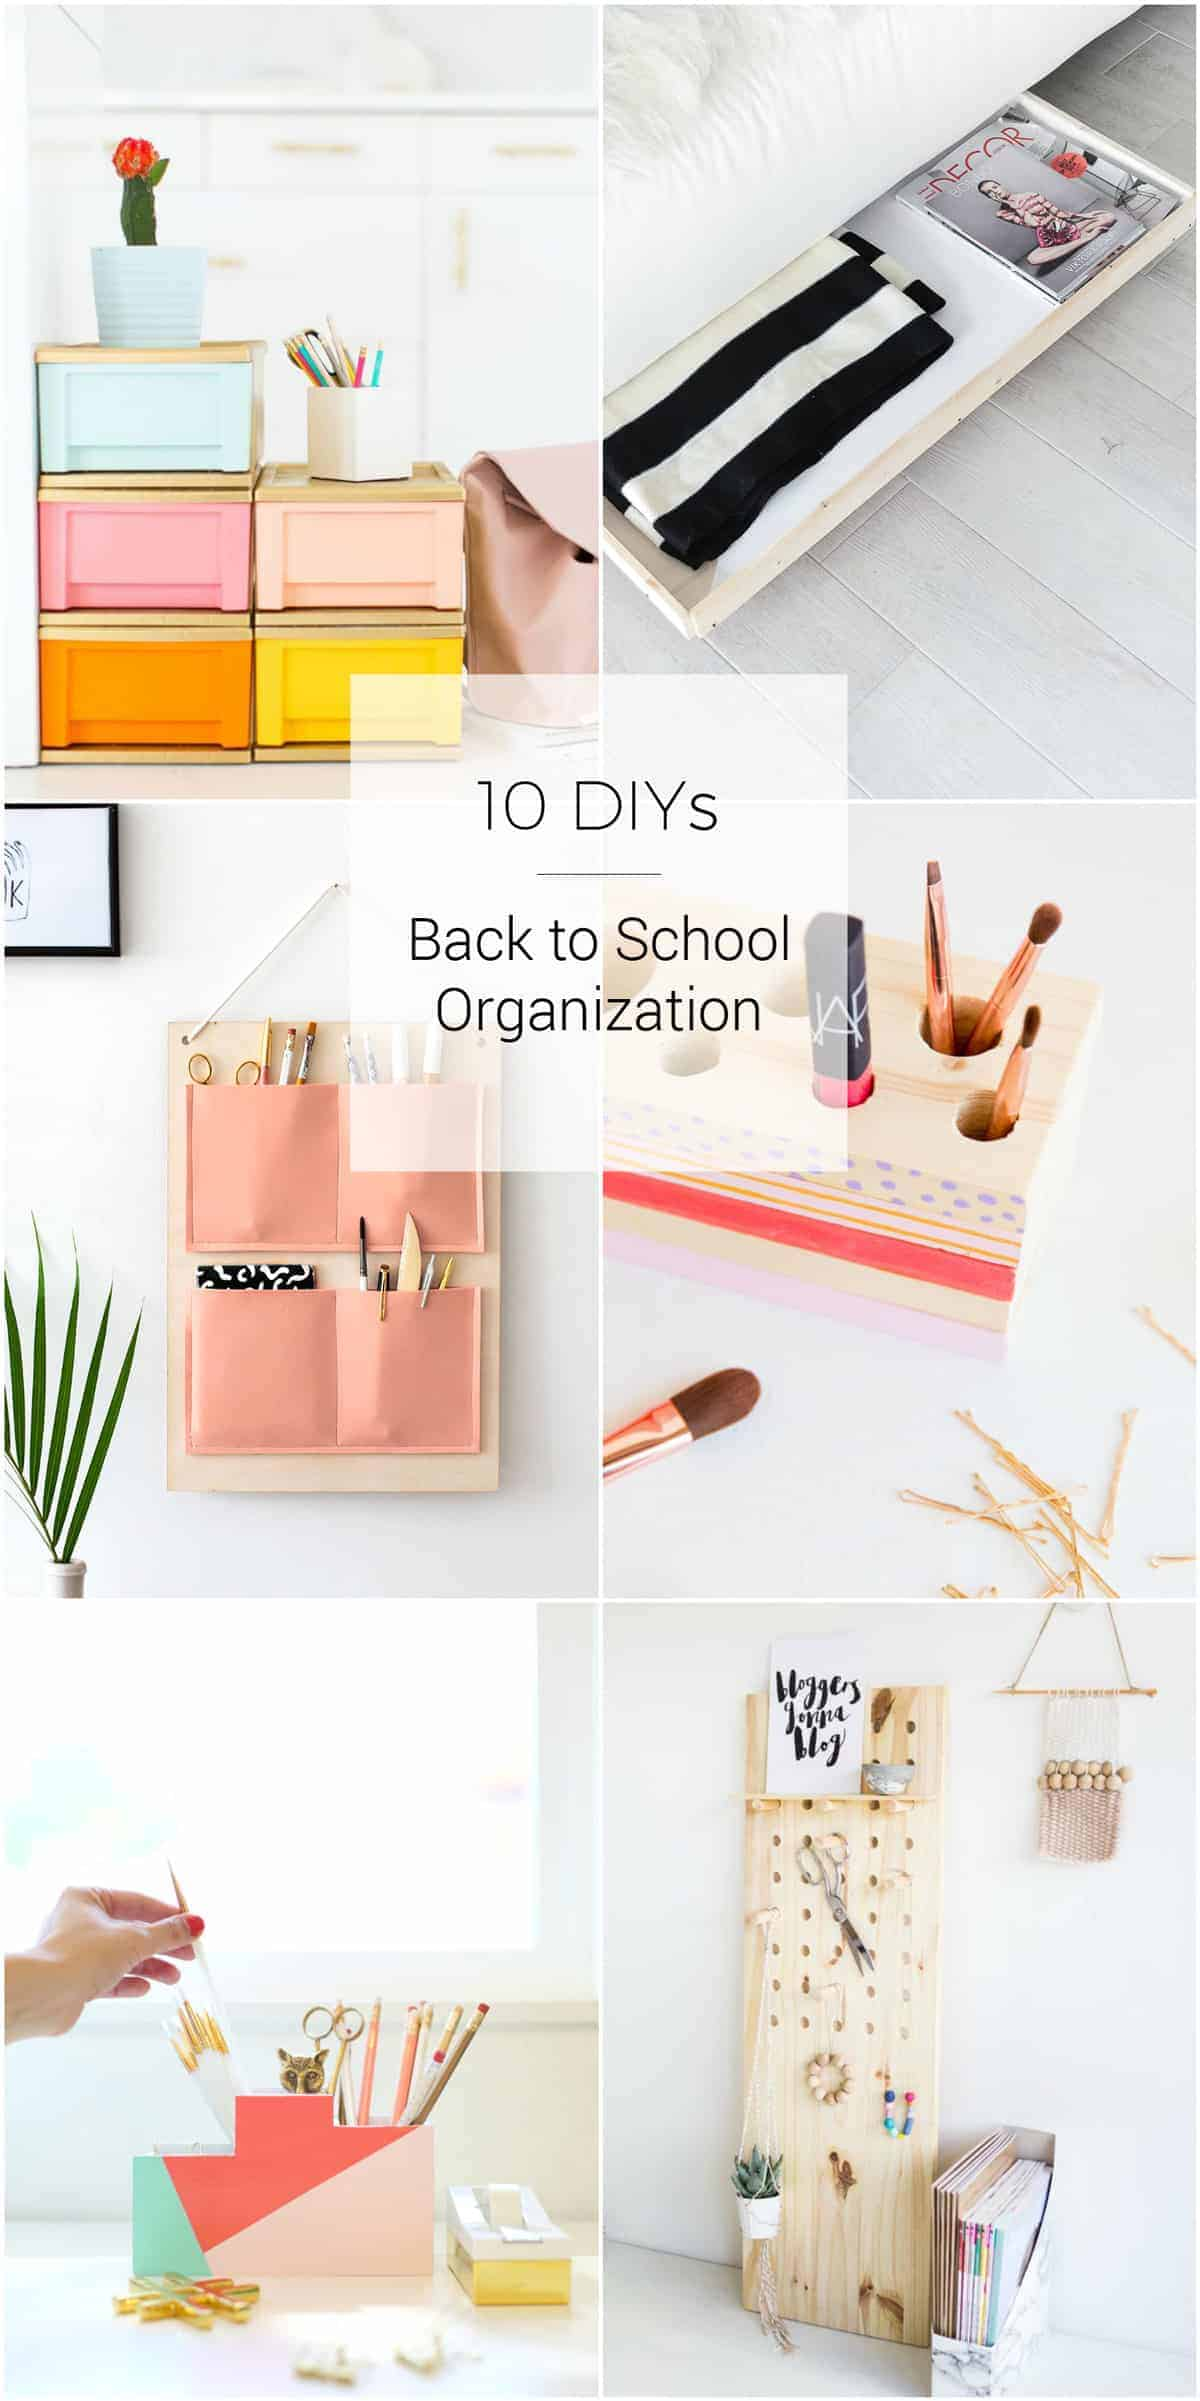 10 DIY Ideas for Back to School Organization